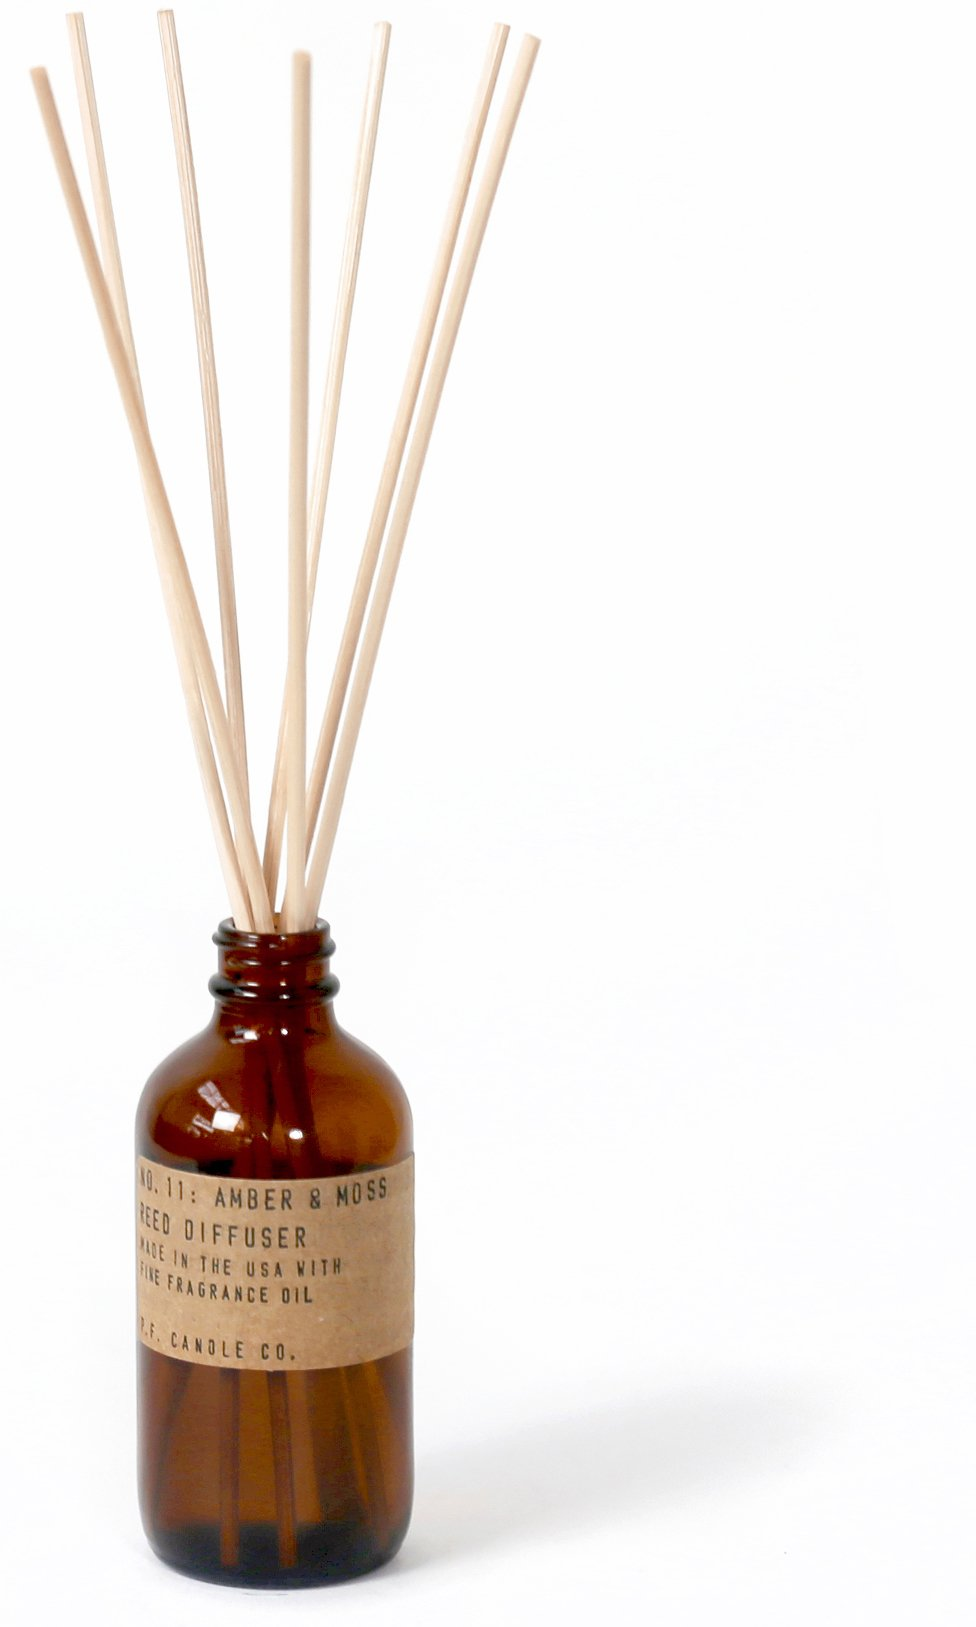 P.F. Candle Co. - No. 11: Amber & Moss Diffuser by P.F. Candle Co.